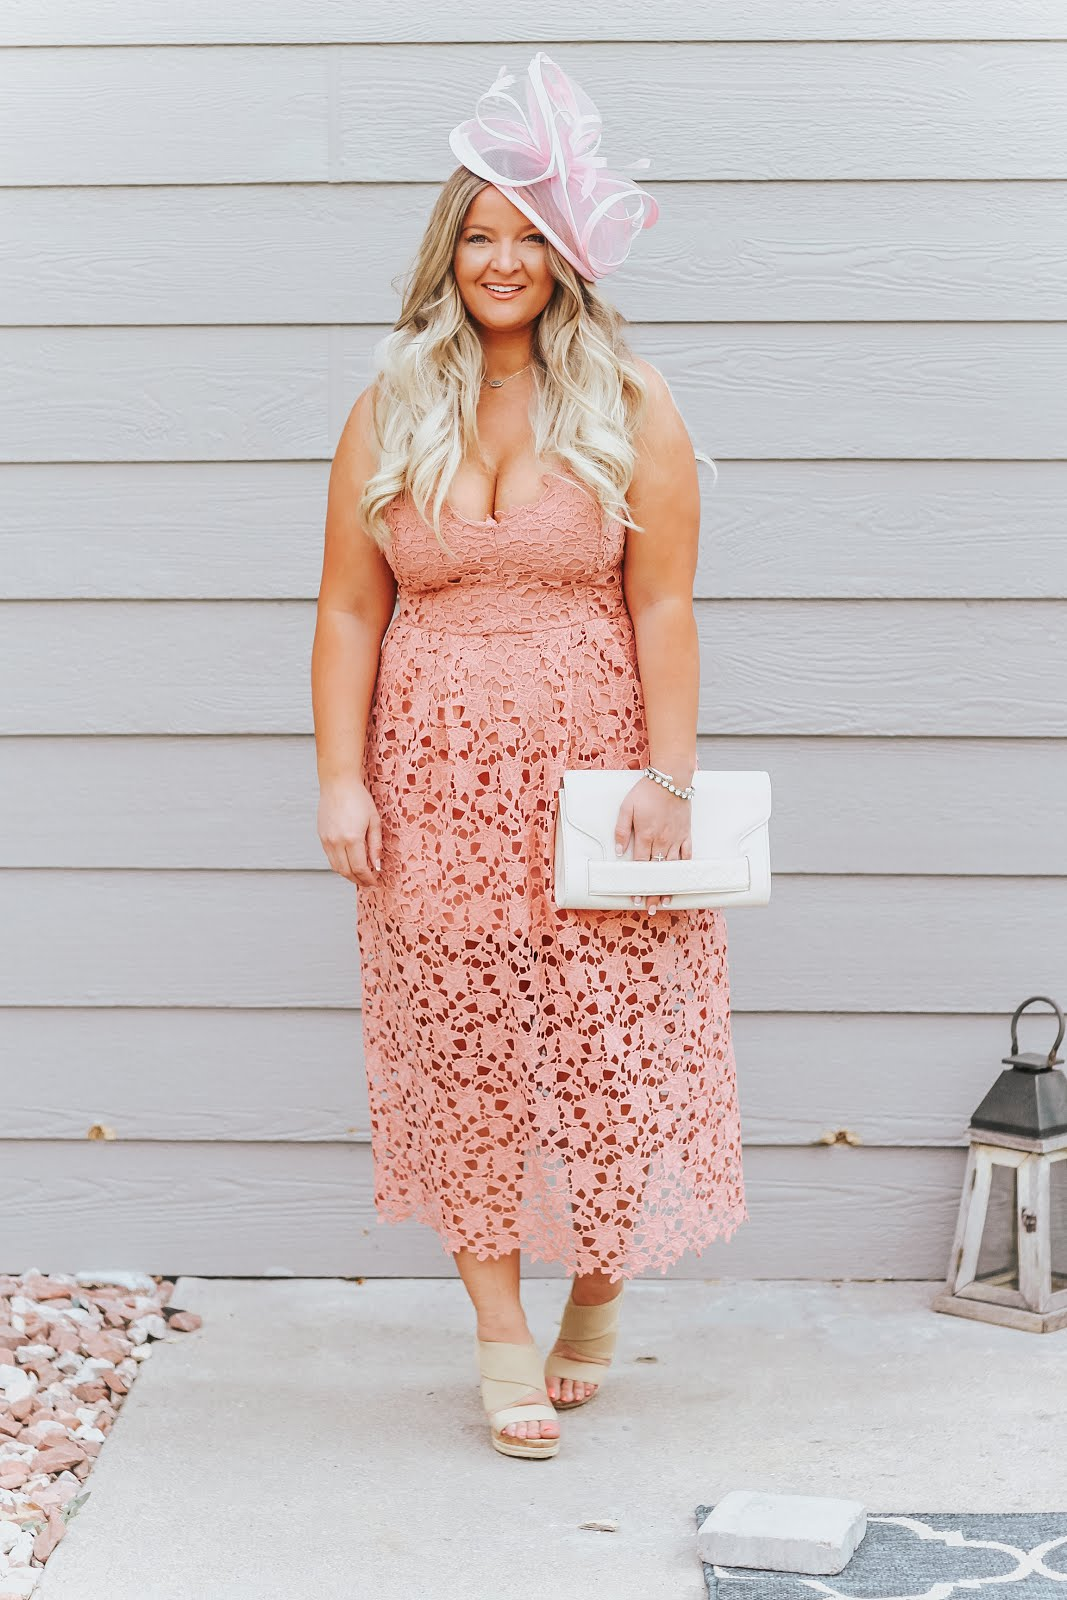 Two Kentucky Derby Outfits You'll want to Wear styled by popular Denver fashion blogger, Delayna Denaye